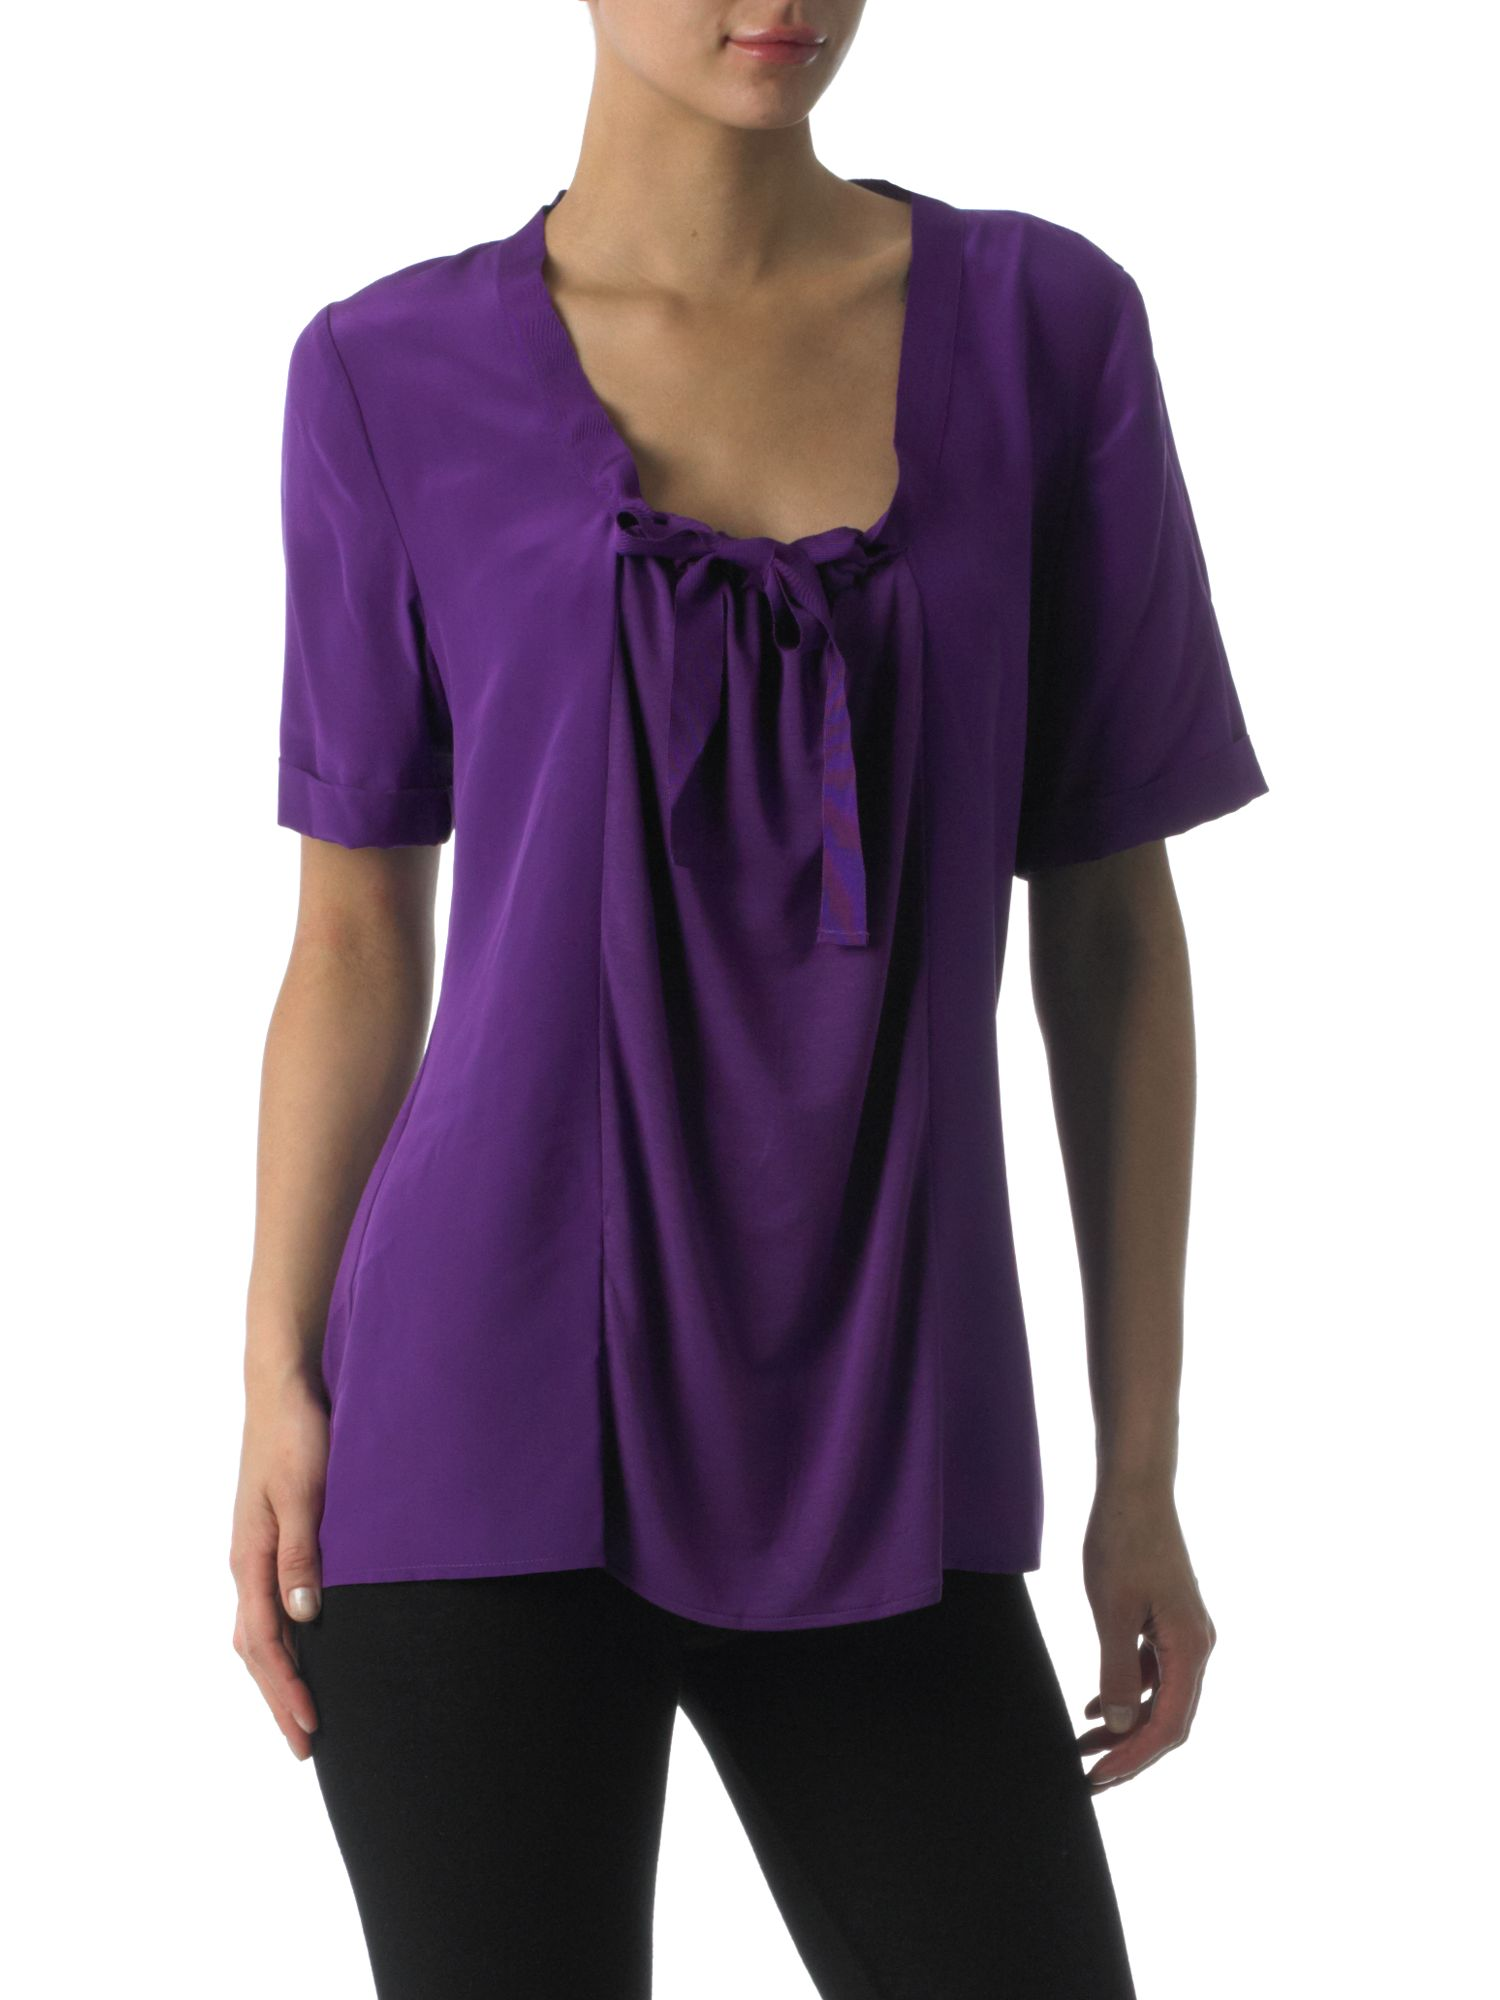 T Tahari Short sleeved ruched front blouse - Purple XS,XS product image